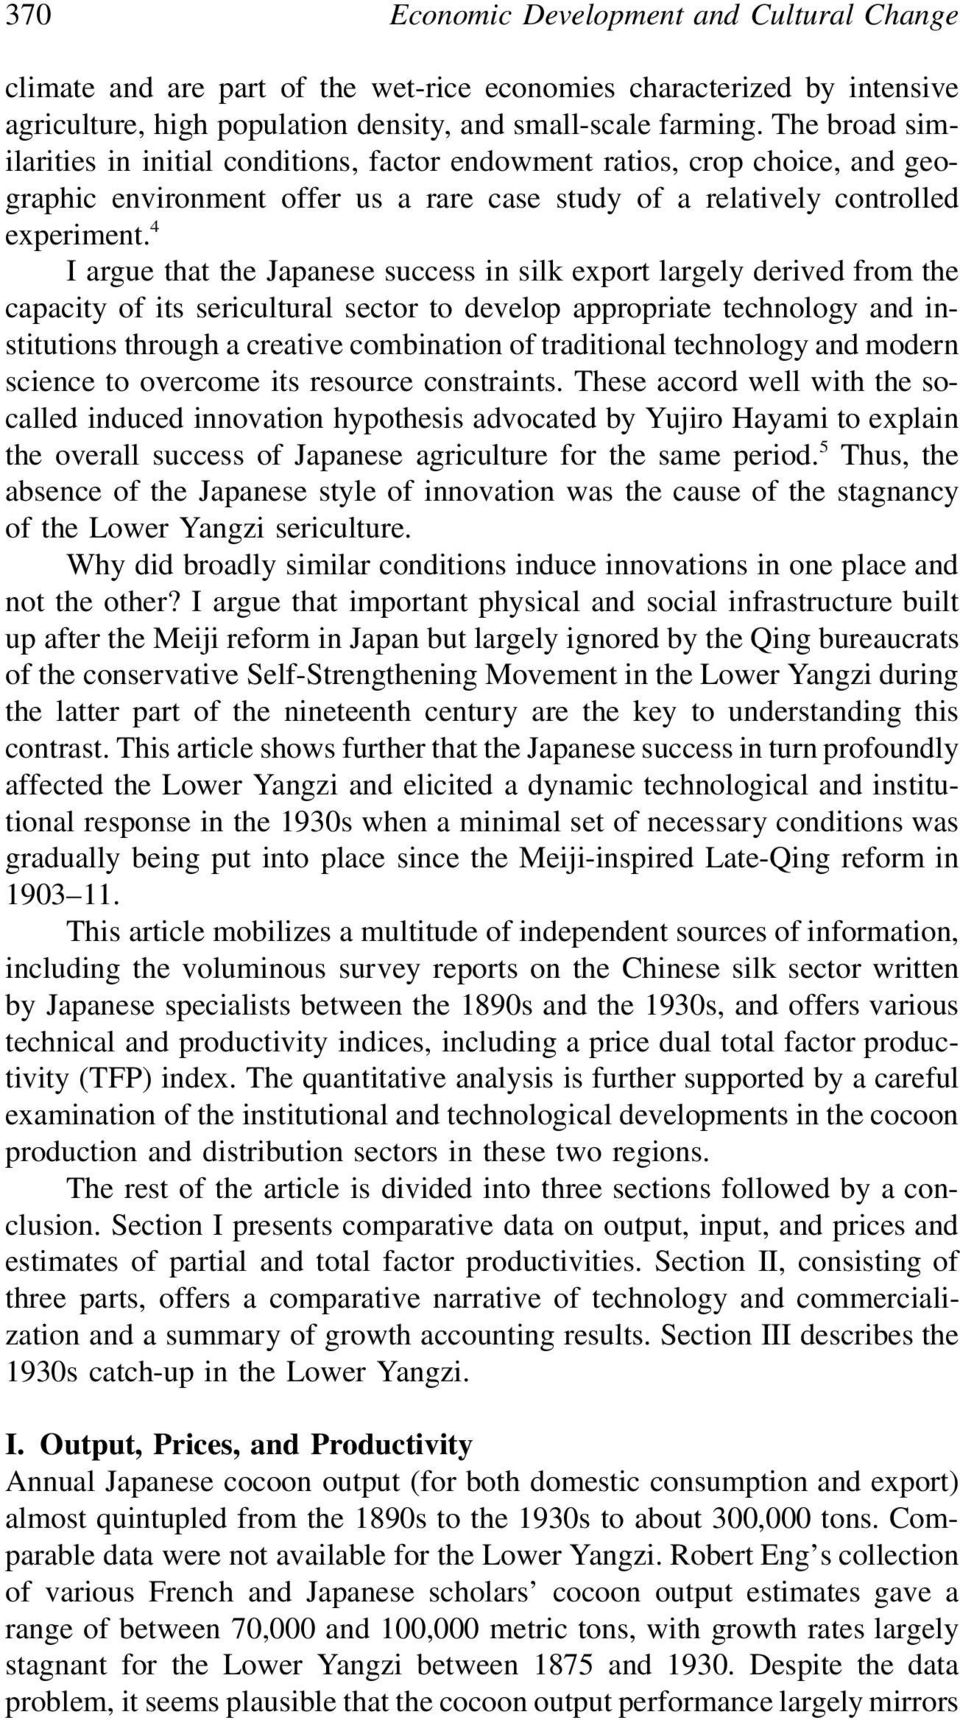 4 I argue that the Japanese success in silk export largely derived from the capacity of its sericultural sector to develop appropriate technology and institutions through a creative combination of